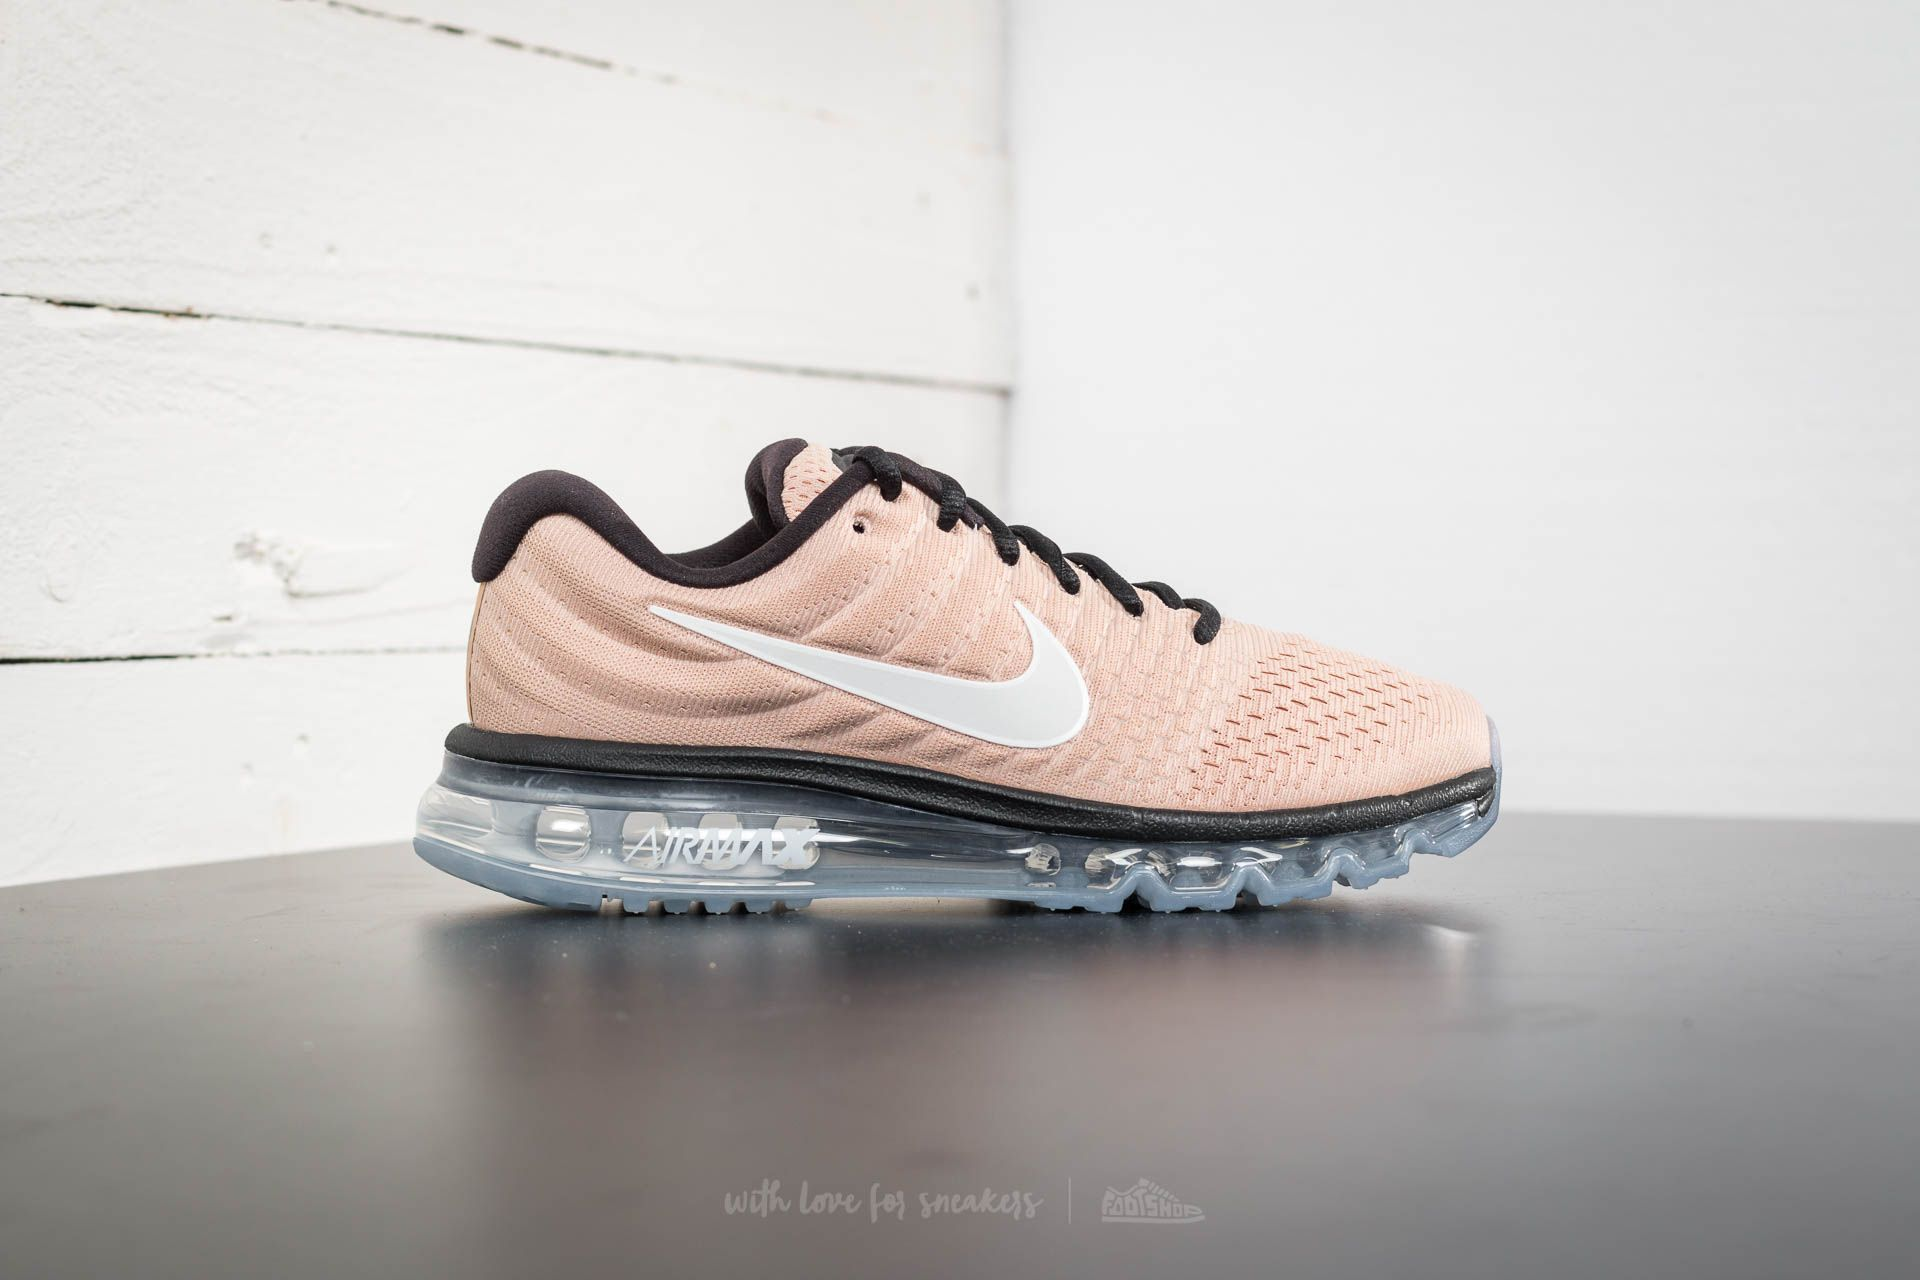 timeless design 224e1 44ebd Nike Air Max 2017 Bio Beige/ White-Black | Footshop